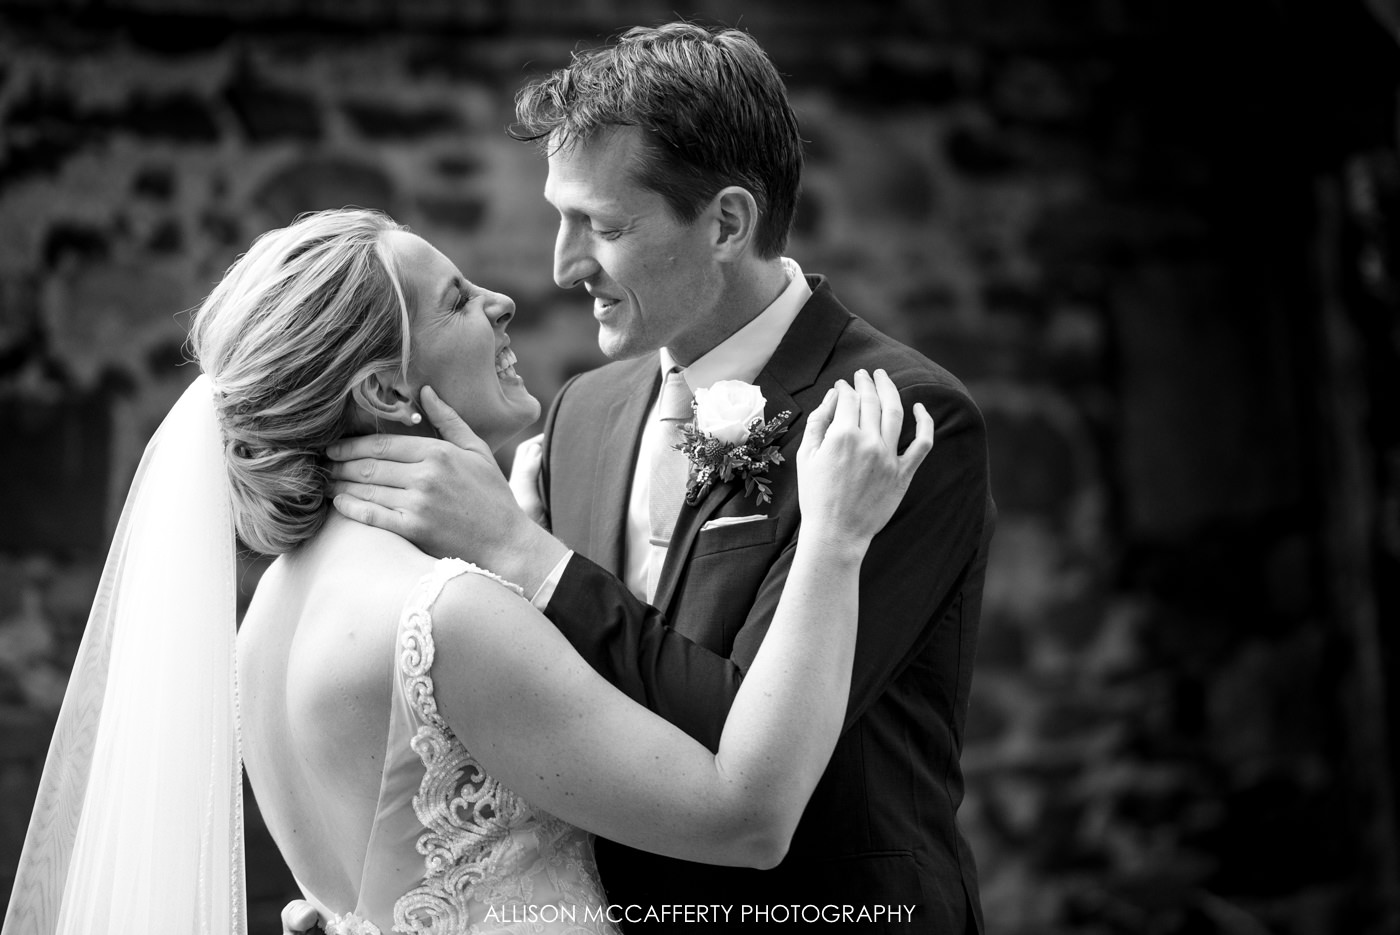 Black and white wedding photo at Rose Bank Winery